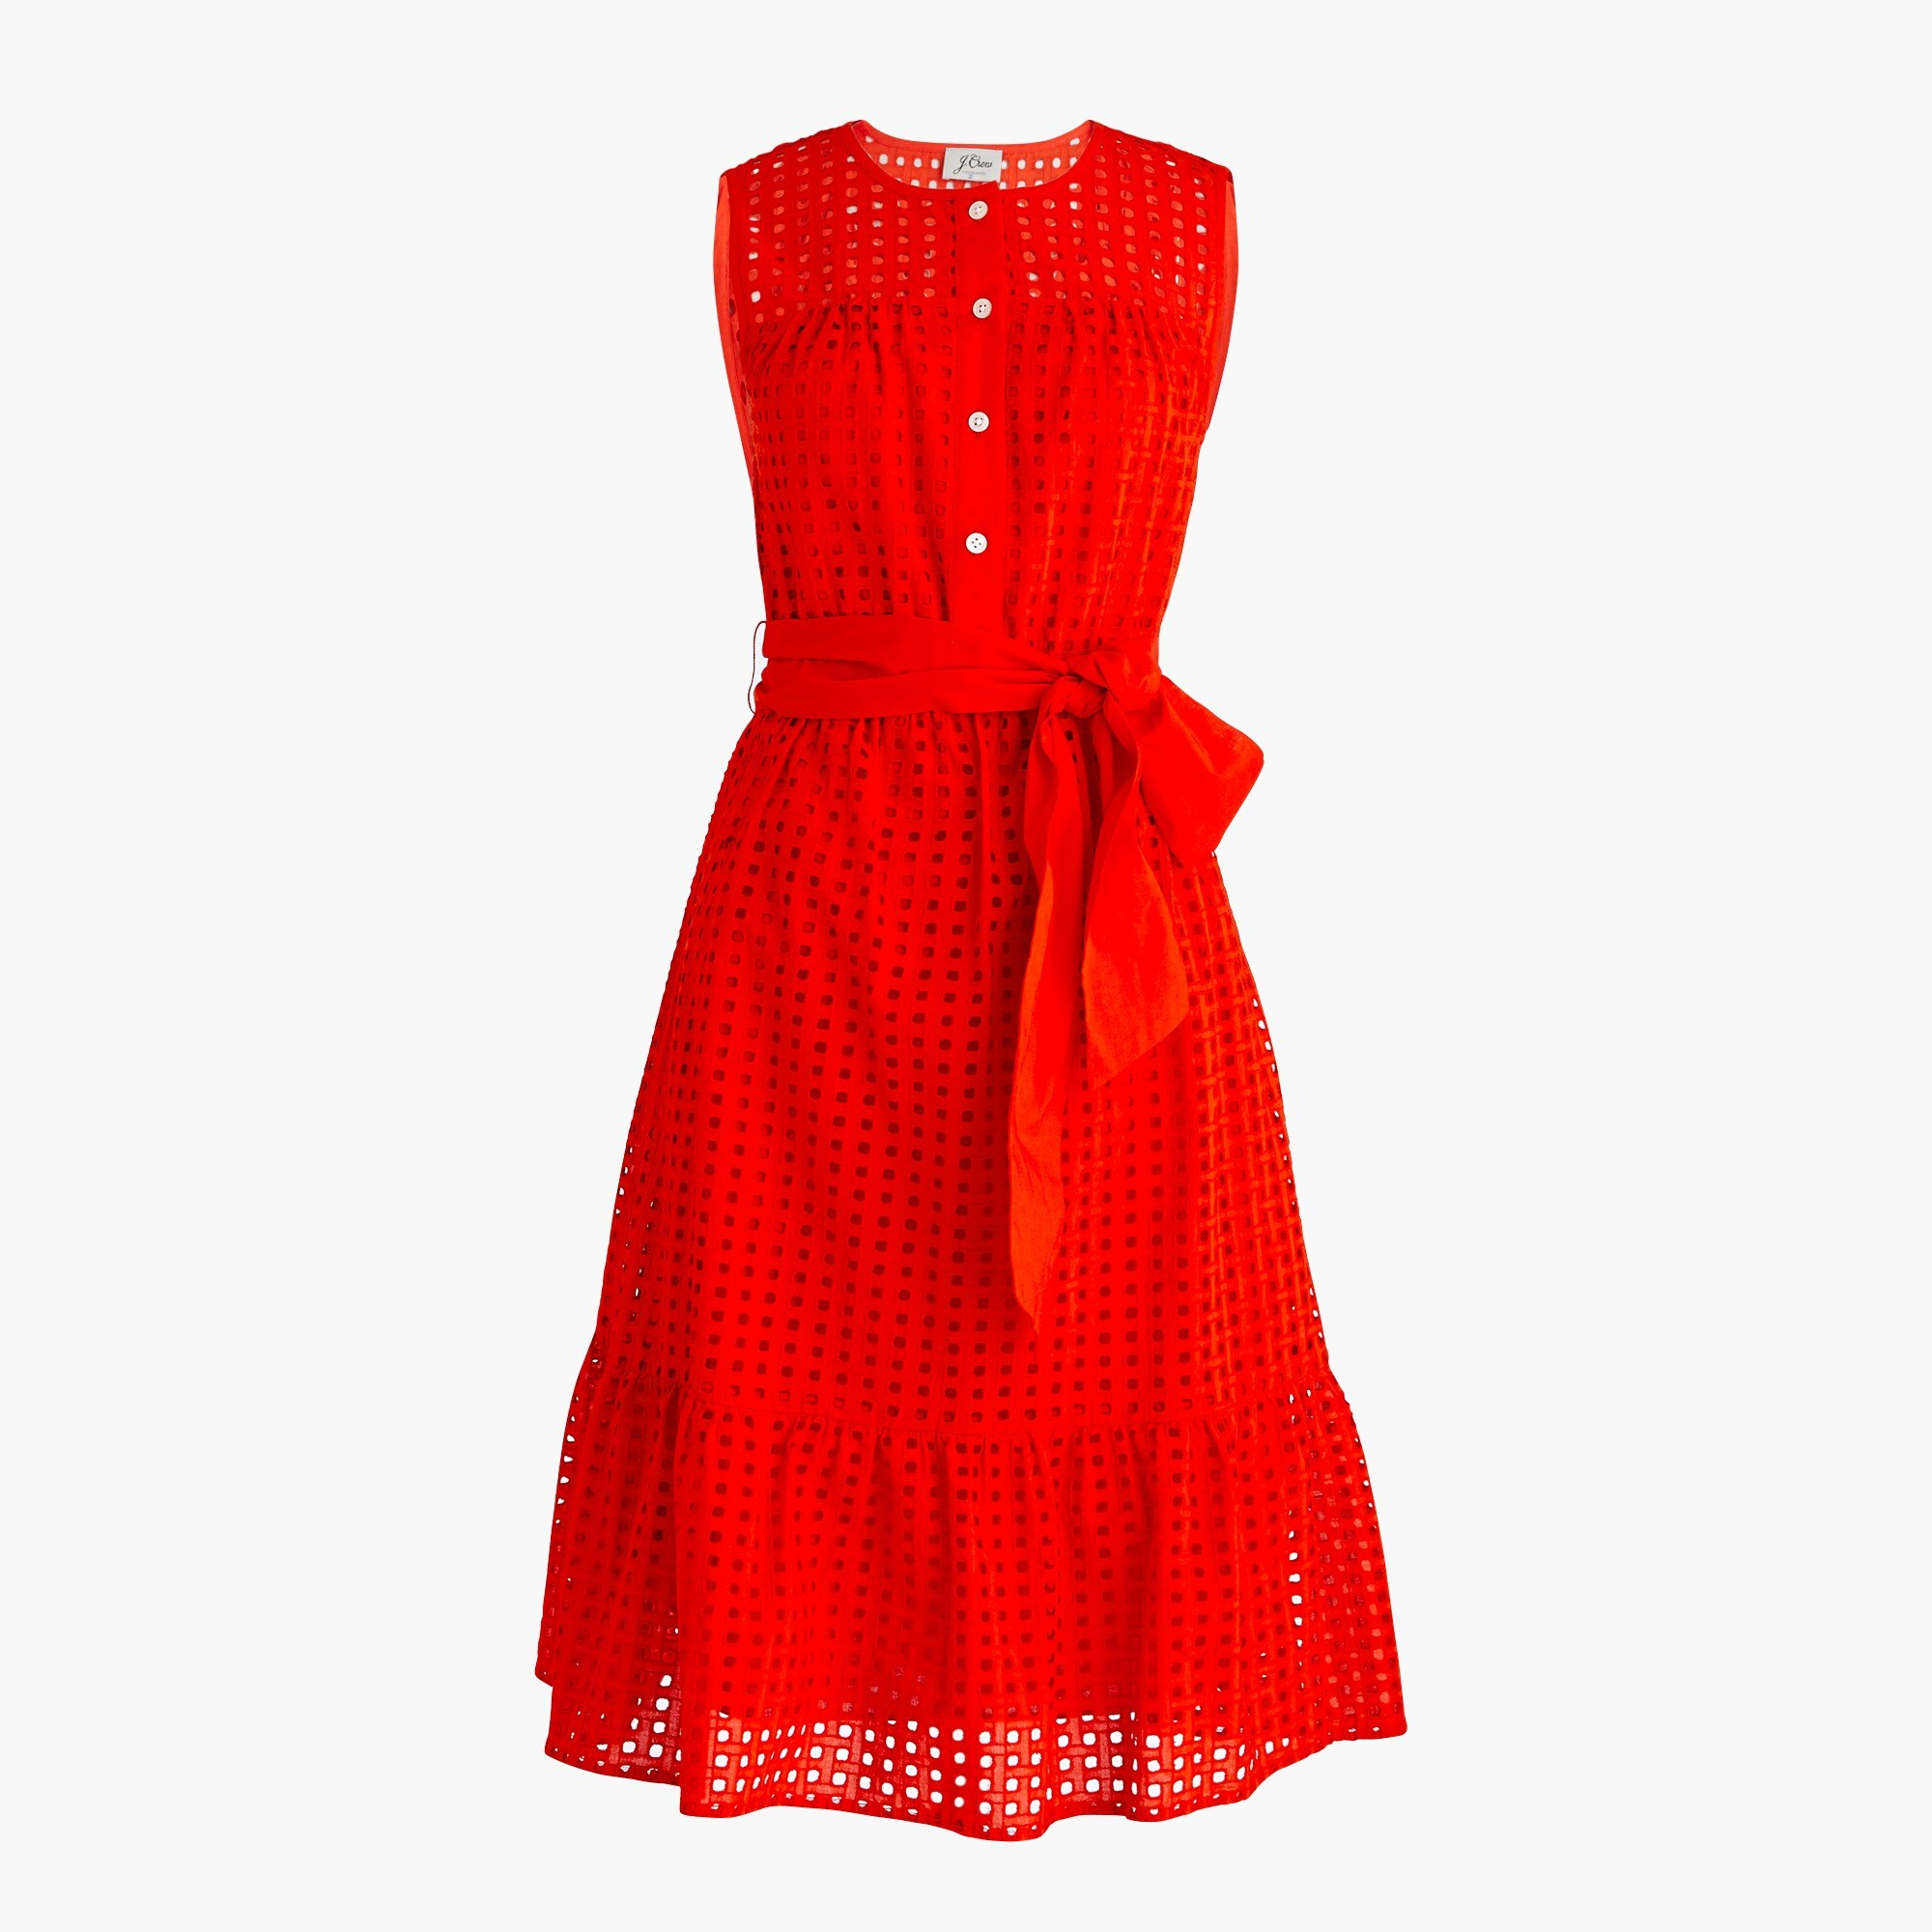 Petite all-over eyelet dress